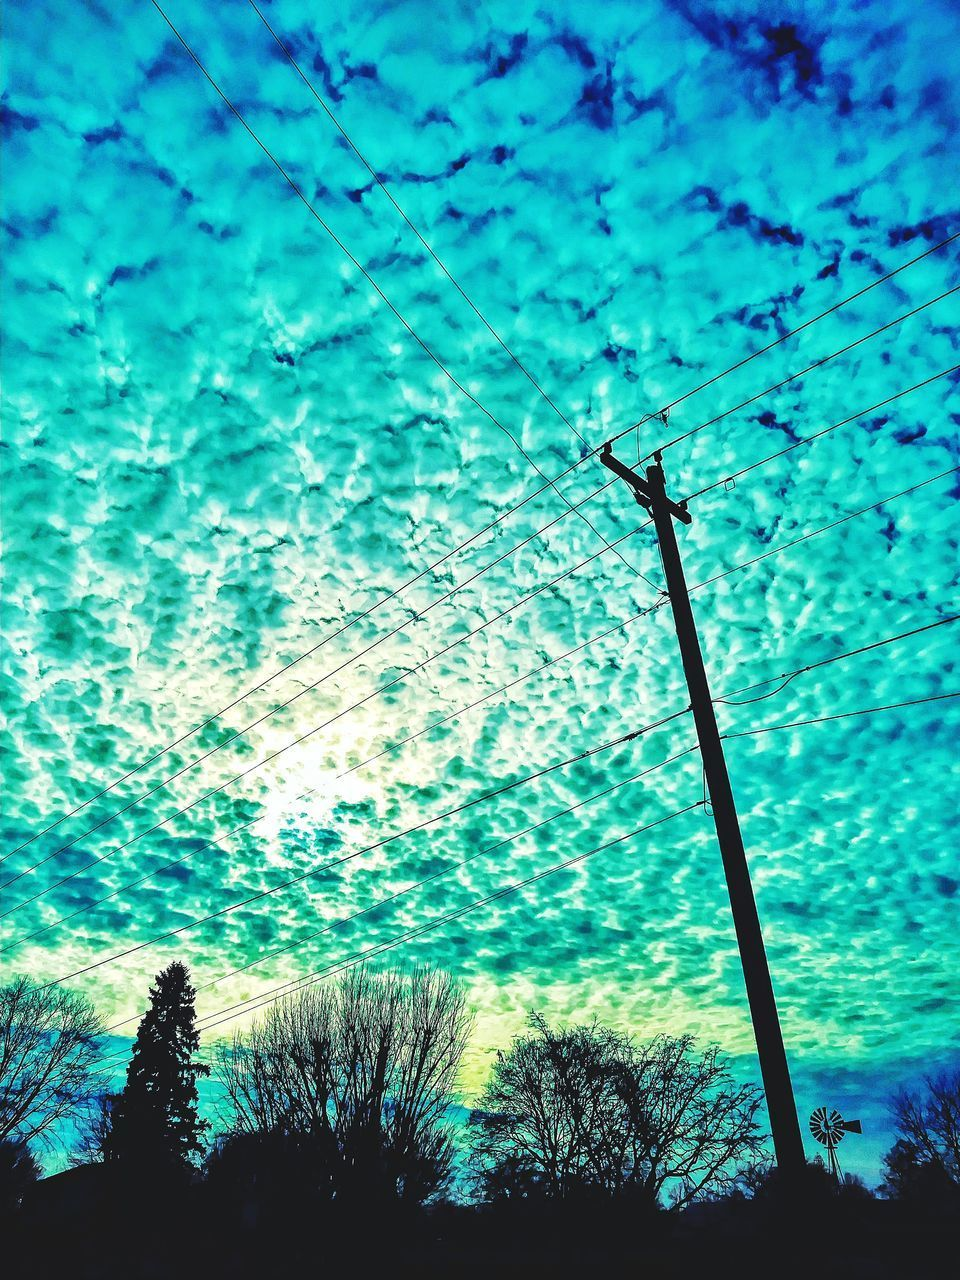 LOW ANGLE VIEW OF SILHOUETTE TREES ON BLUE SKY